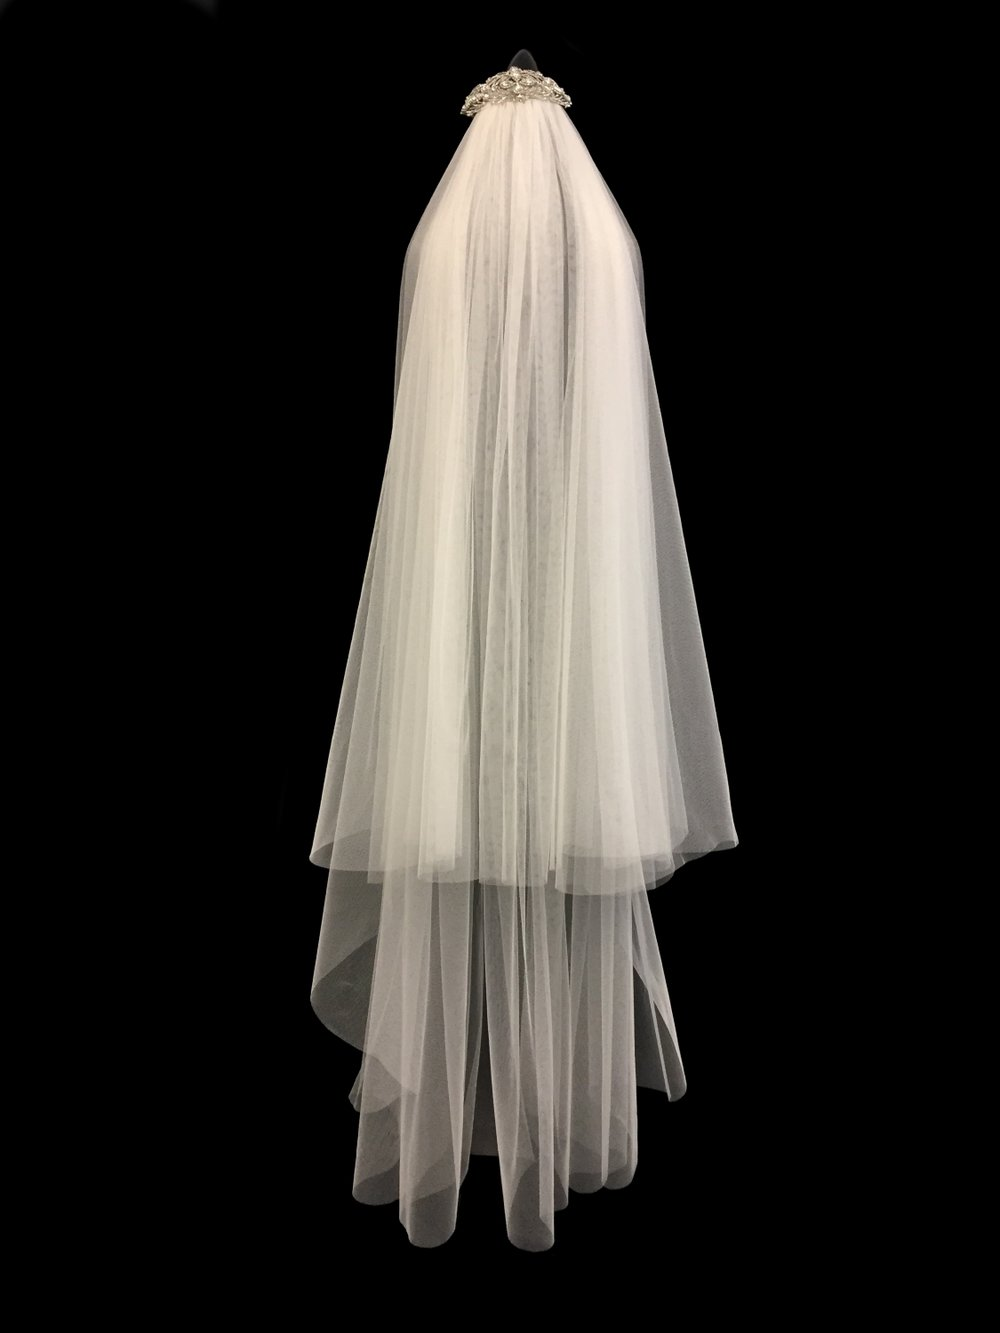 Style V5717-DI _ 42-60x120 Circle 2-Tier Faux Silk Veil